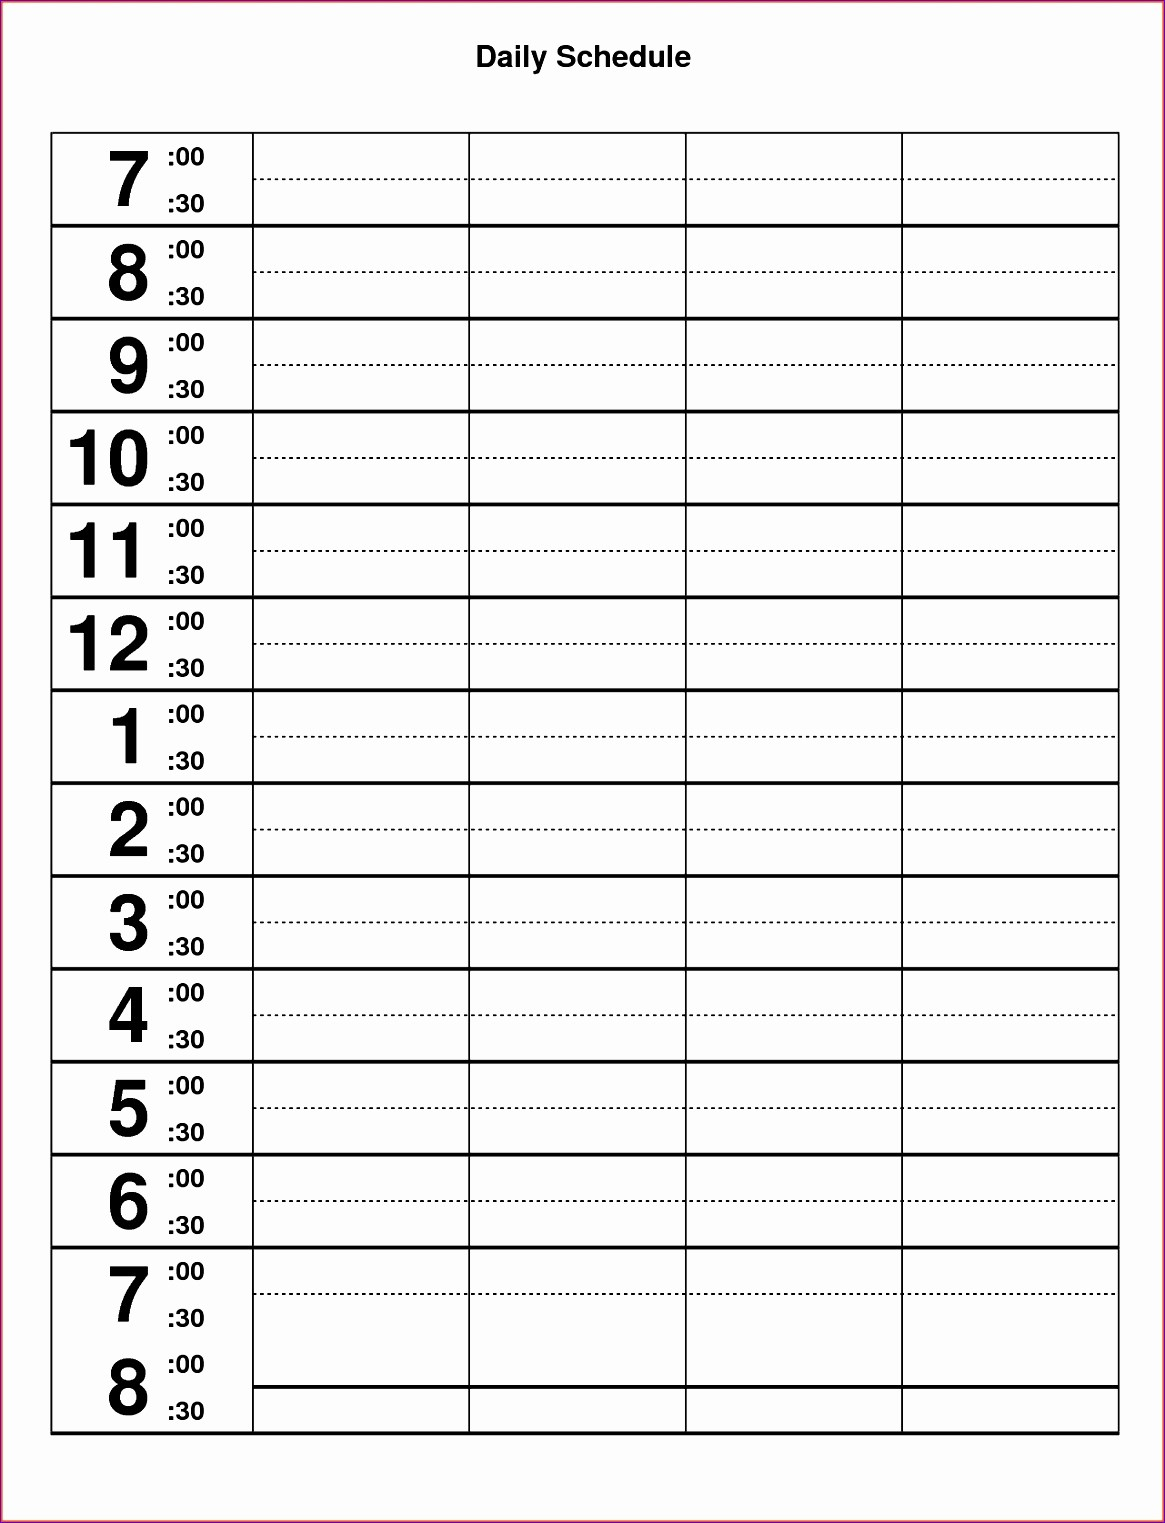 Daily Hourly Schedule Excel Template Best Of 10 Excel Hourly Schedule Template Exceltemplates